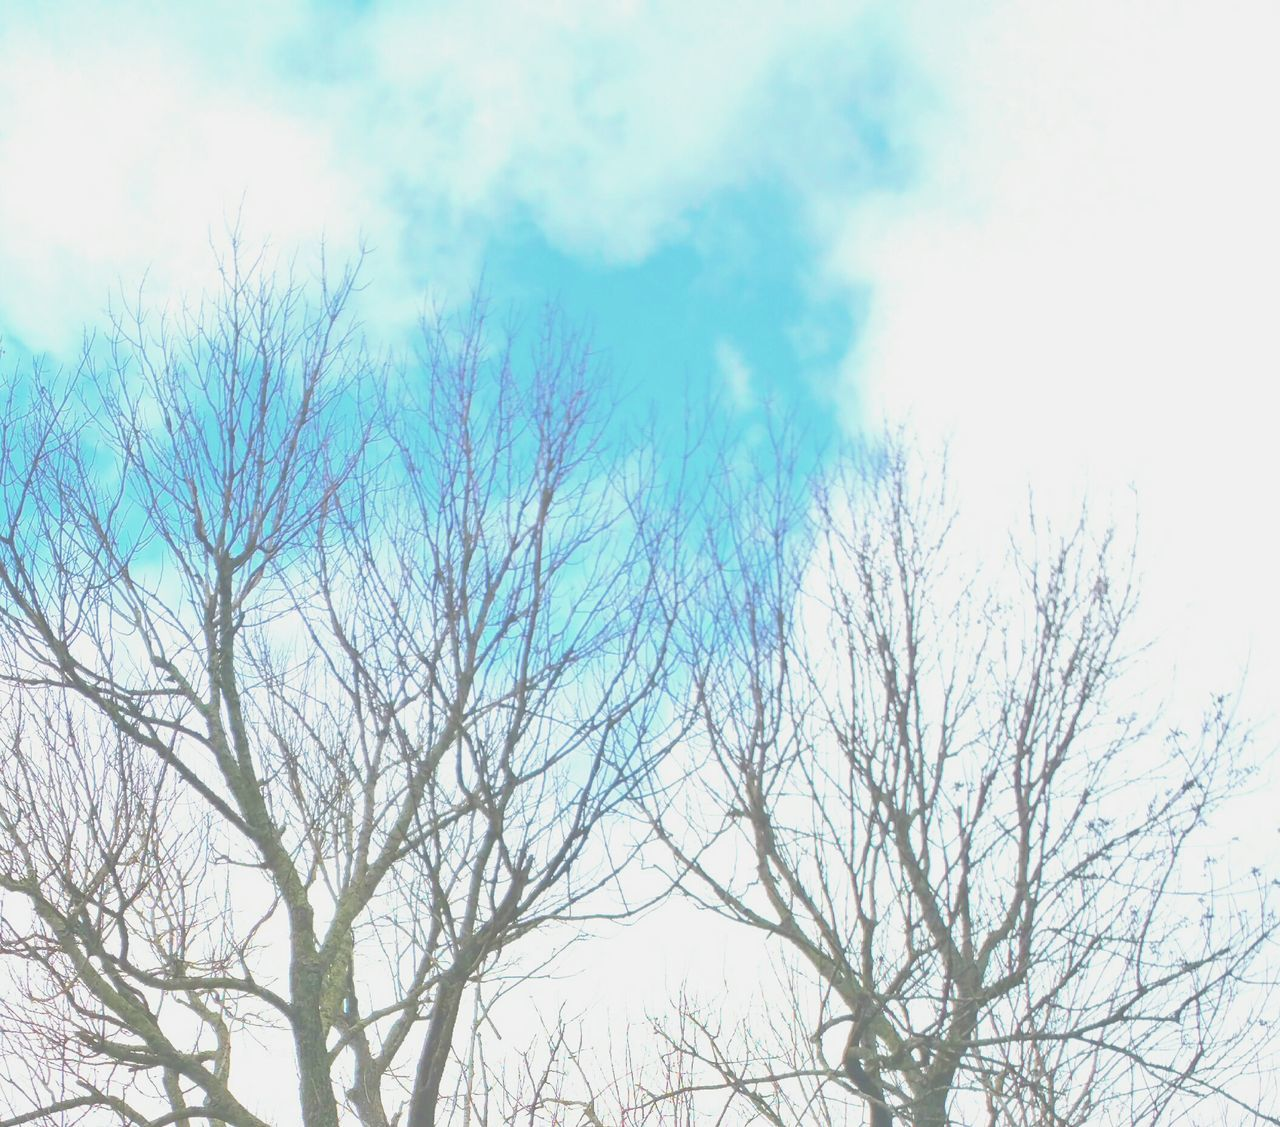 low angle view, sky, bare tree, outdoors, nature, day, no people, beauty in nature, tree, cloud - sky, branch, scenics, bird